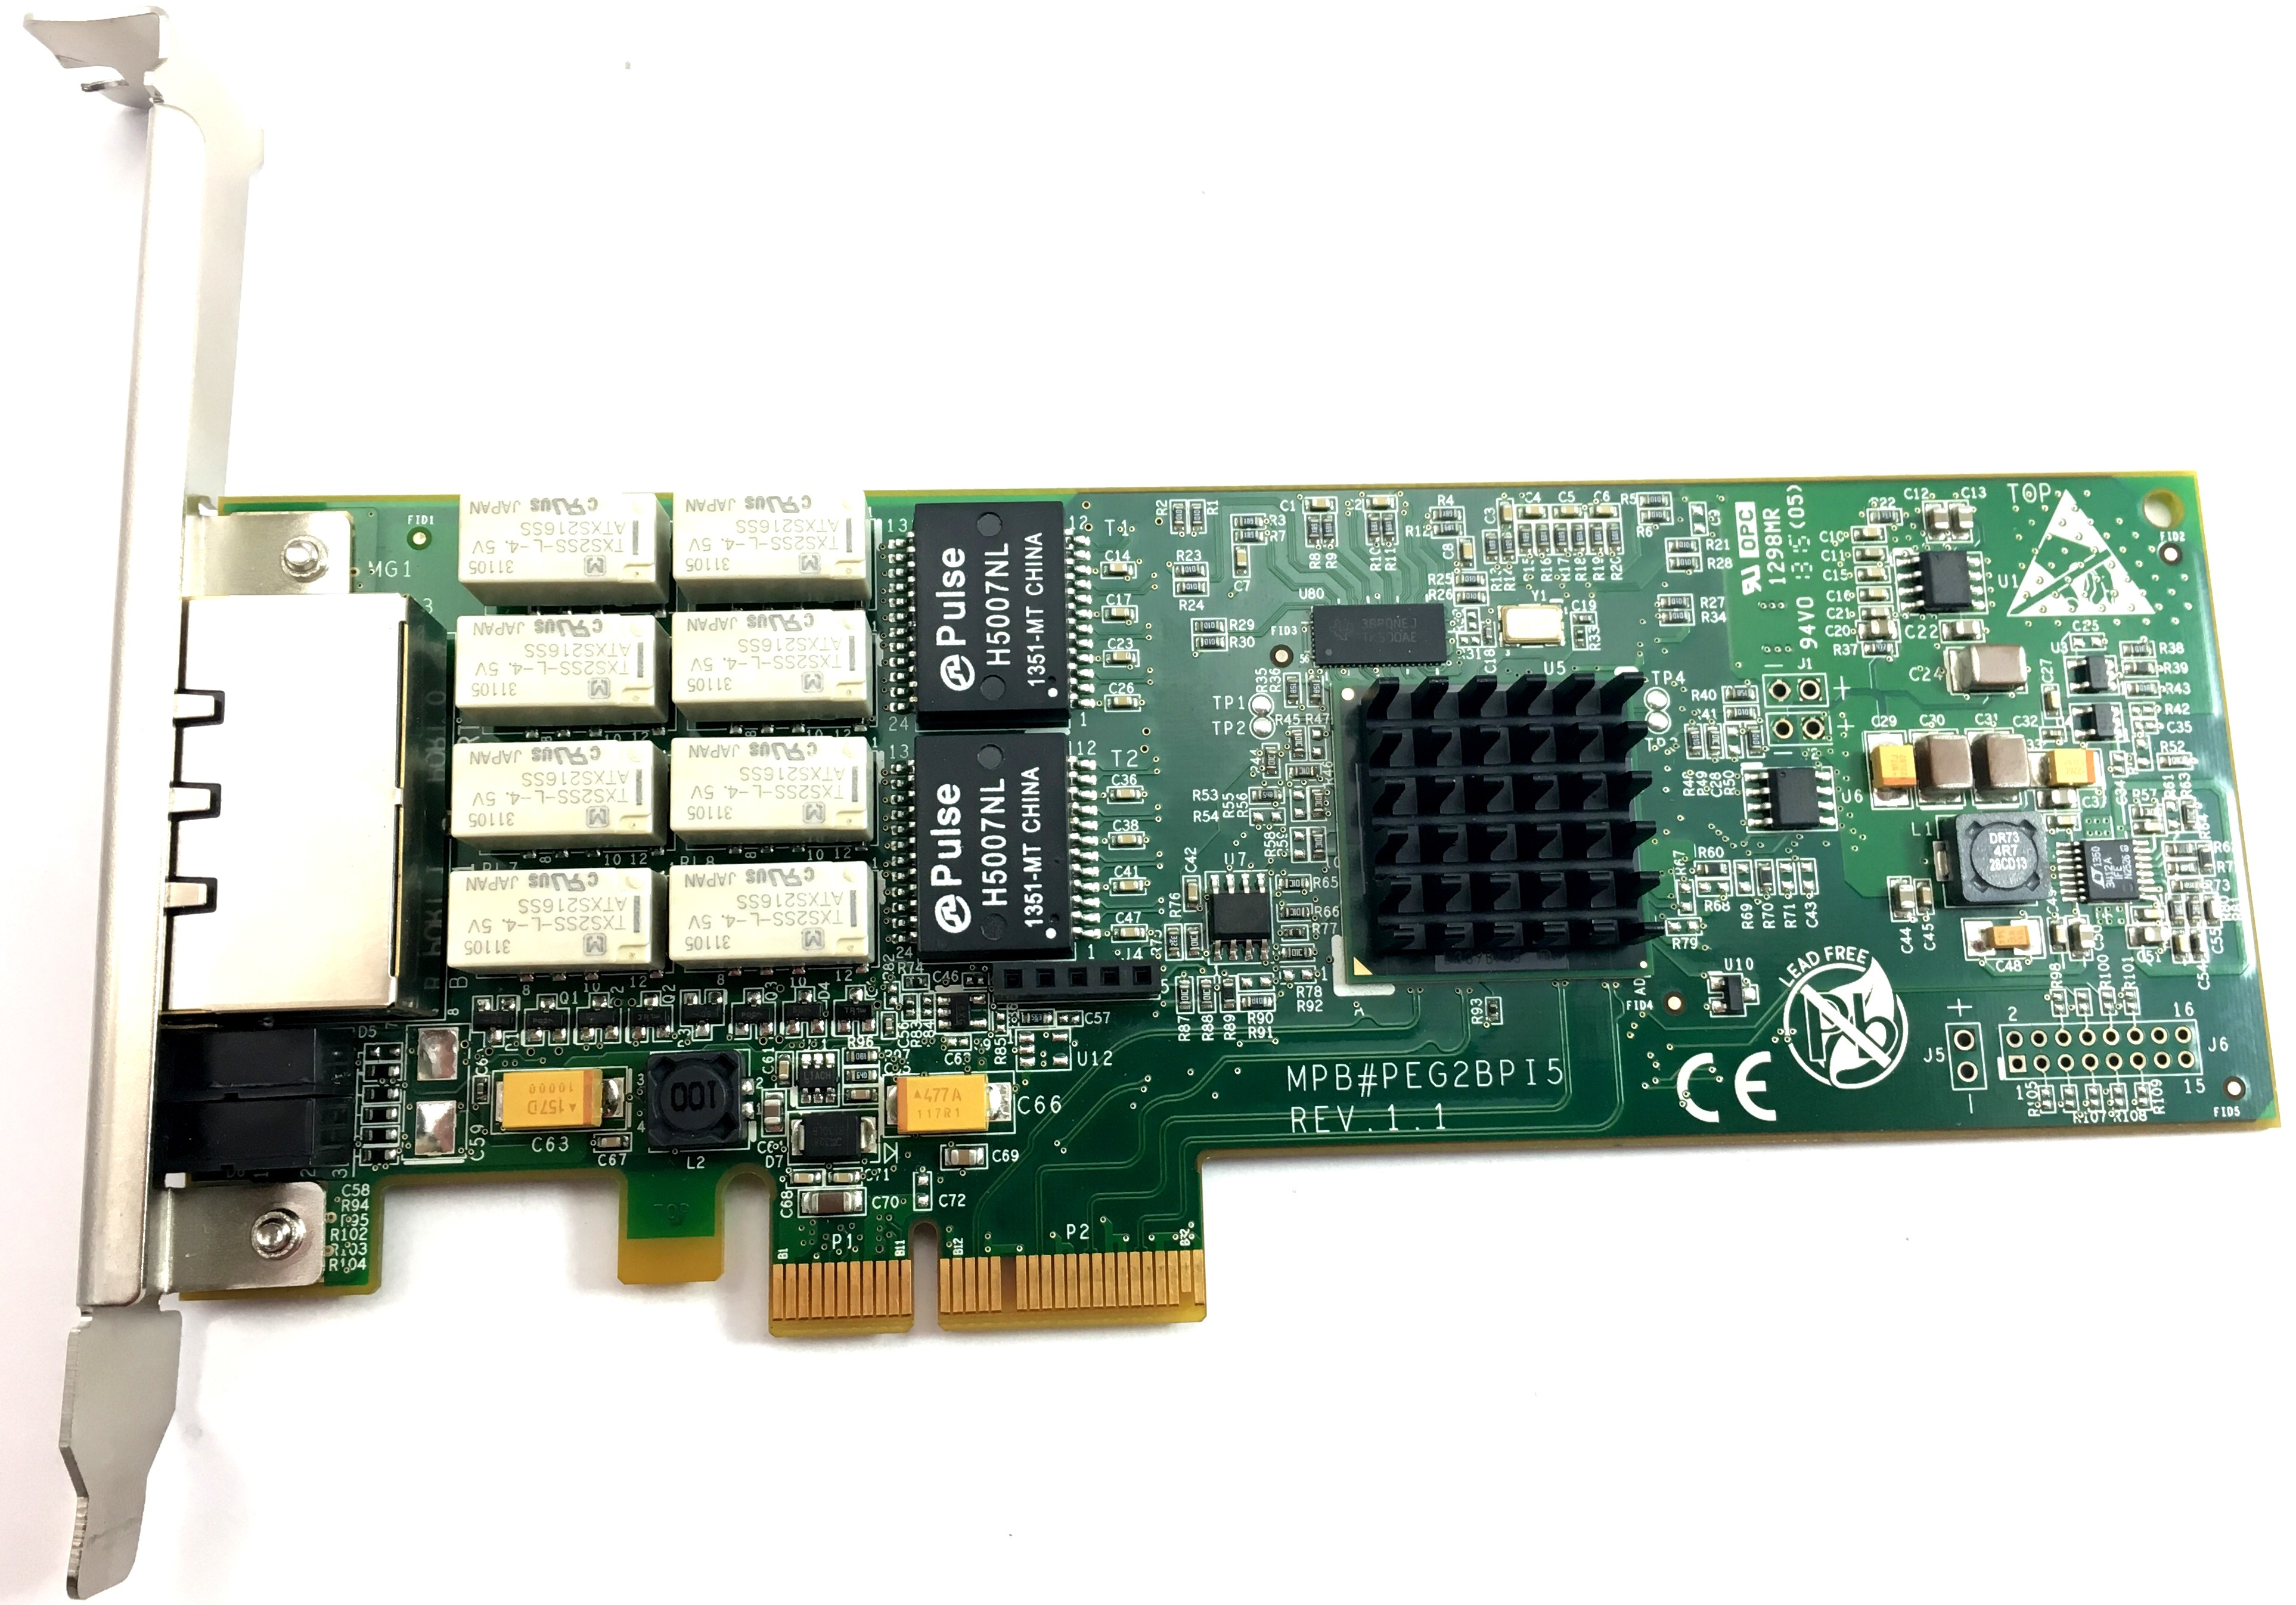 Silicom  Dual Port Copper Gigabit Ethernet Pci Express Bypass Adapter (PEG2BPI6)